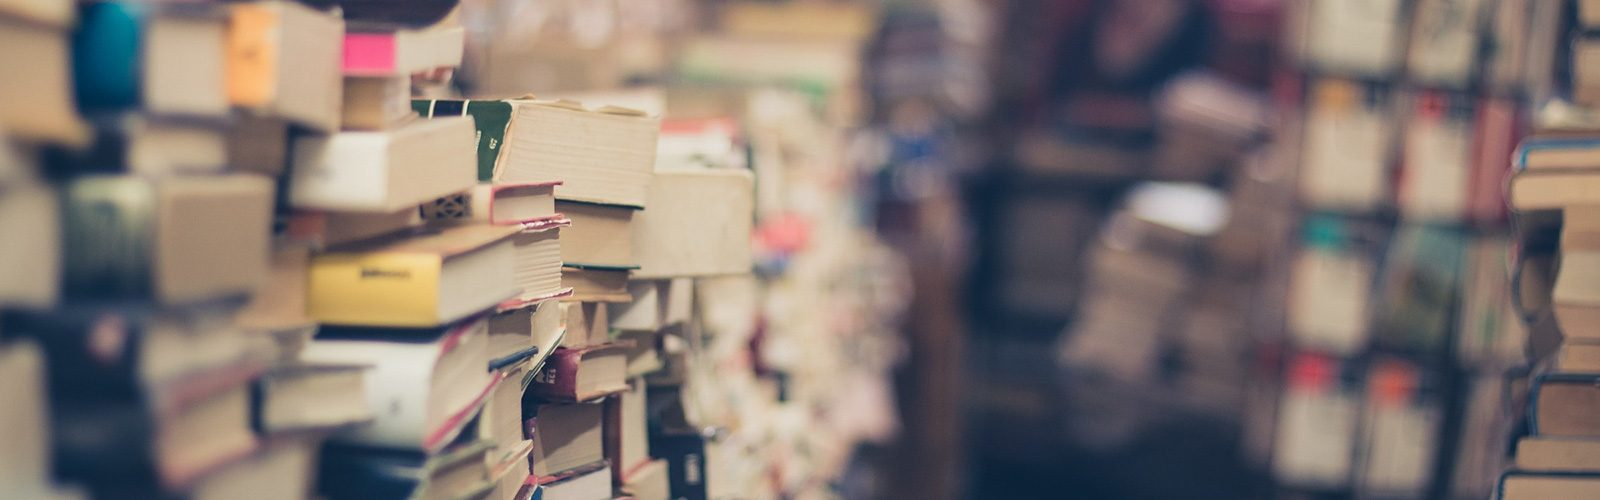 Books stacked in a bookshop